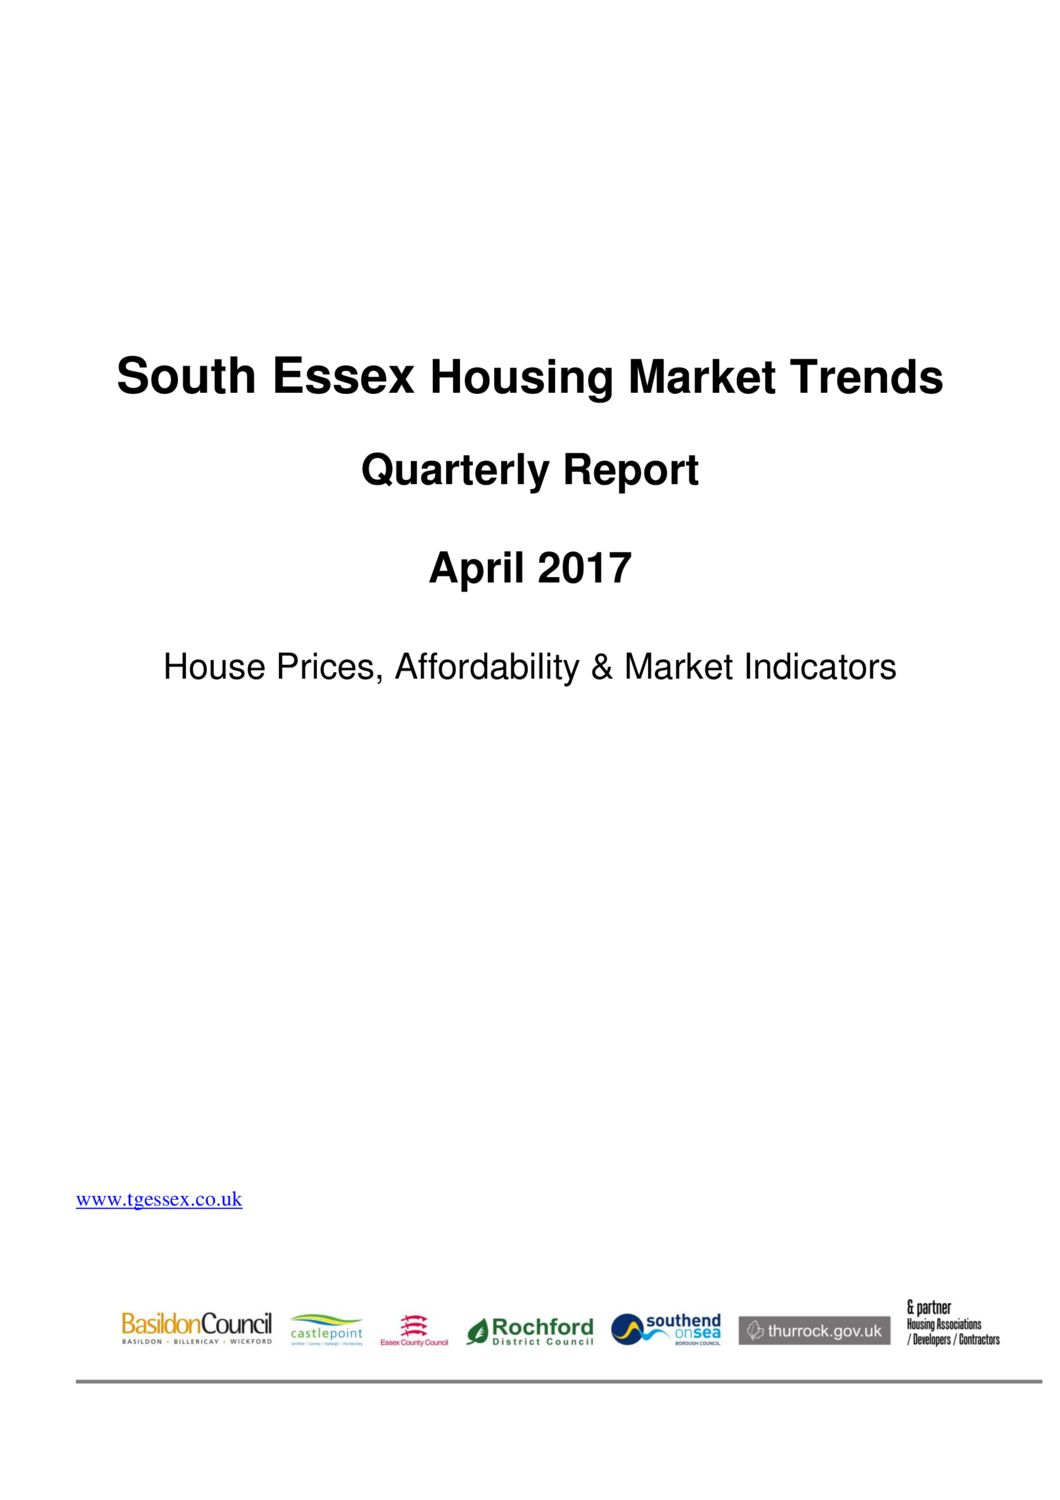 SE Housing Market Trends Quarterly Report April 2017